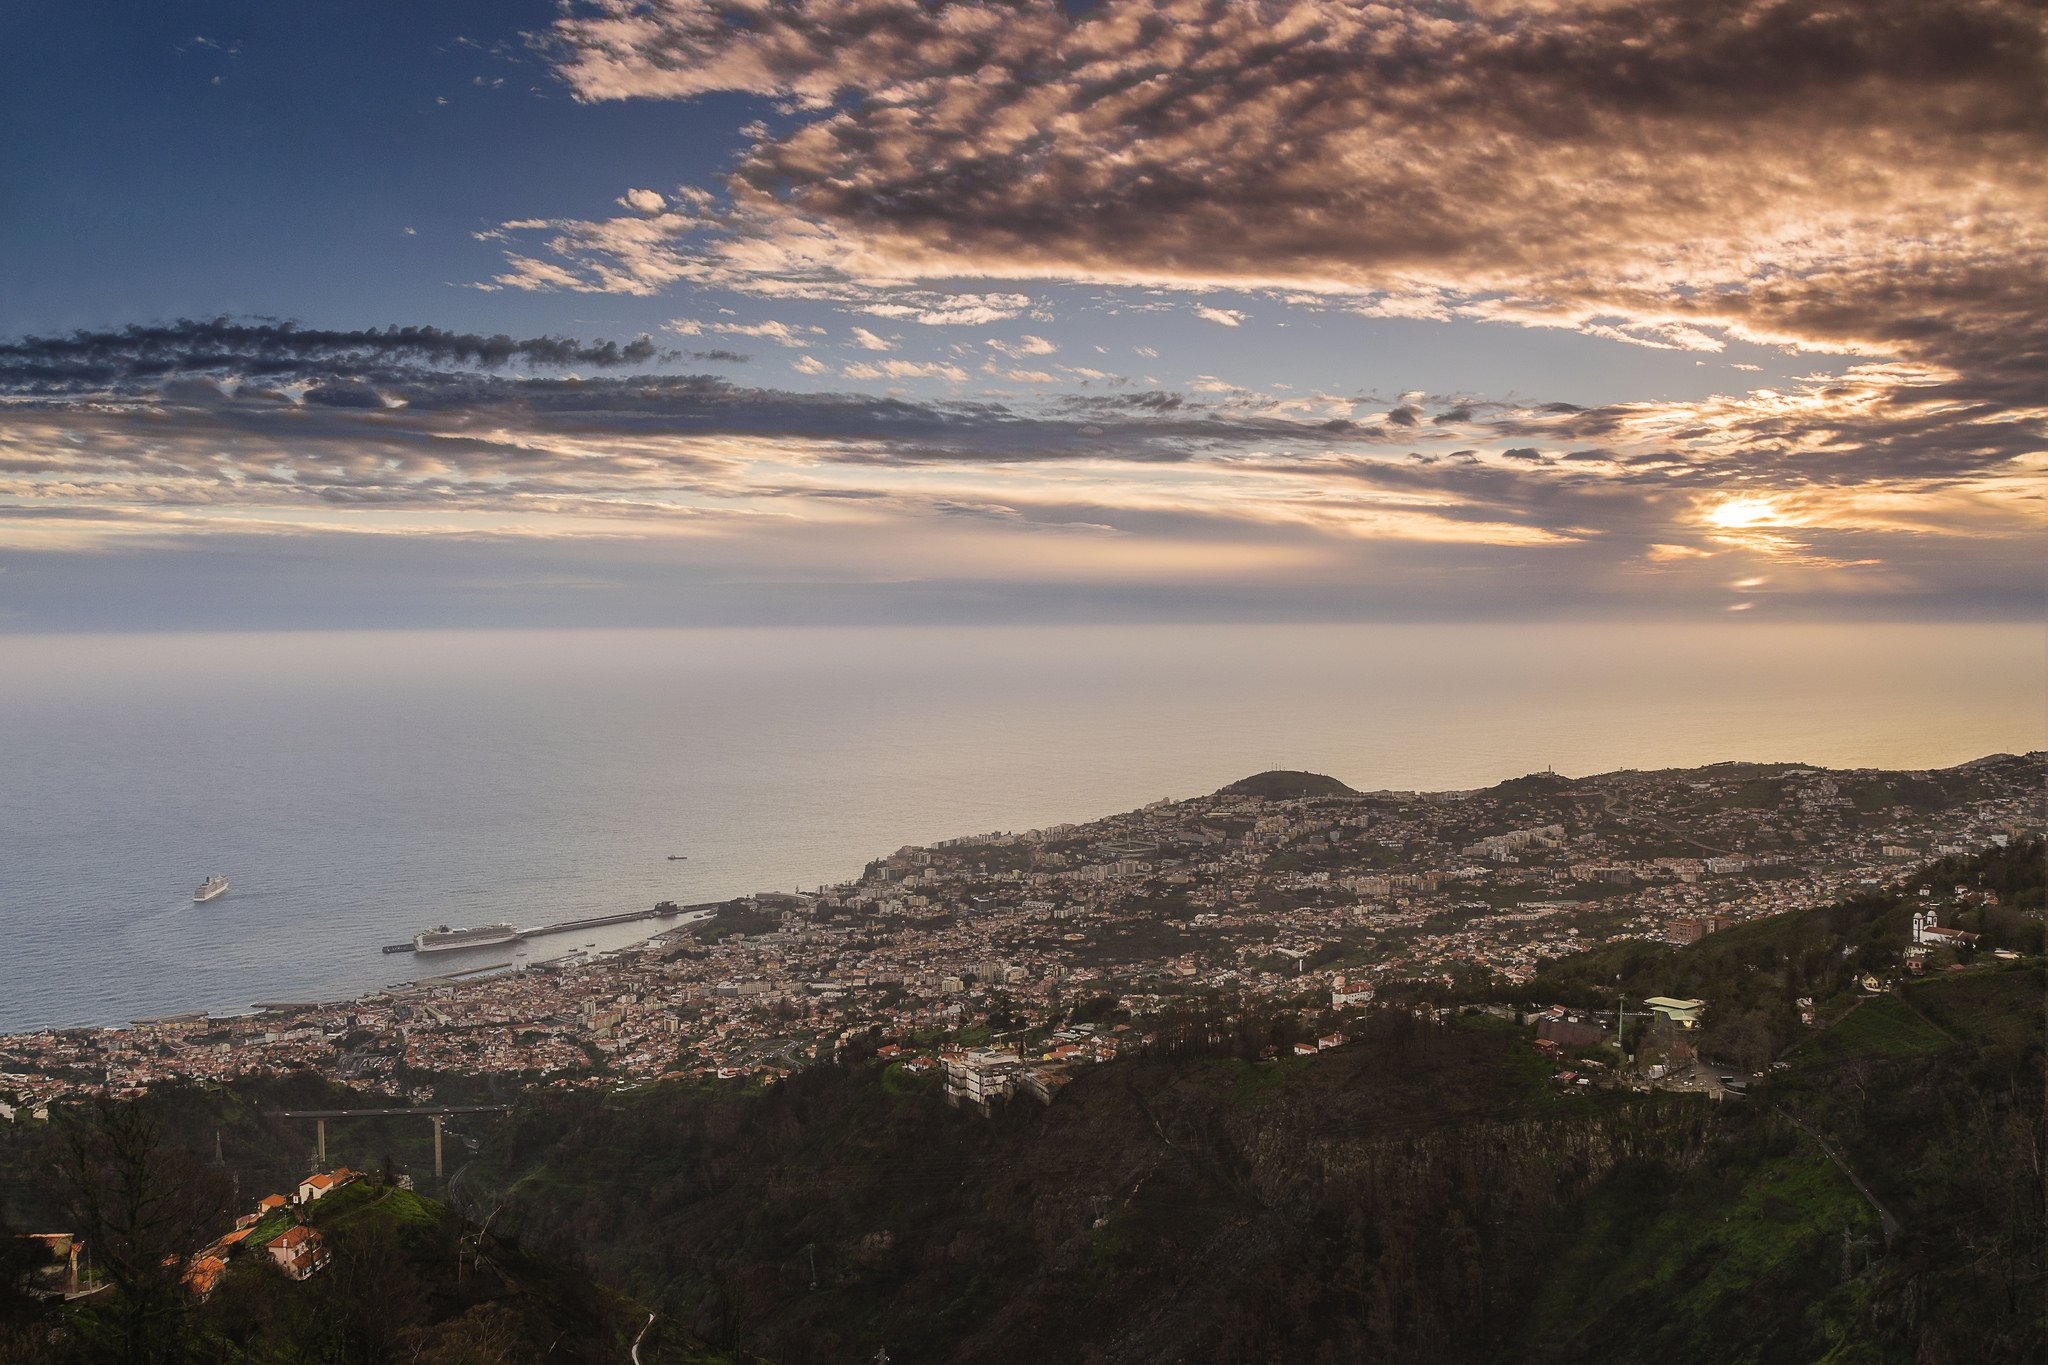 Sunset ( #notsex ) and the City - Funchal - Madeira Island #sharingmadeira Photo by Luisftas https://t.co/UypQKe5pMM